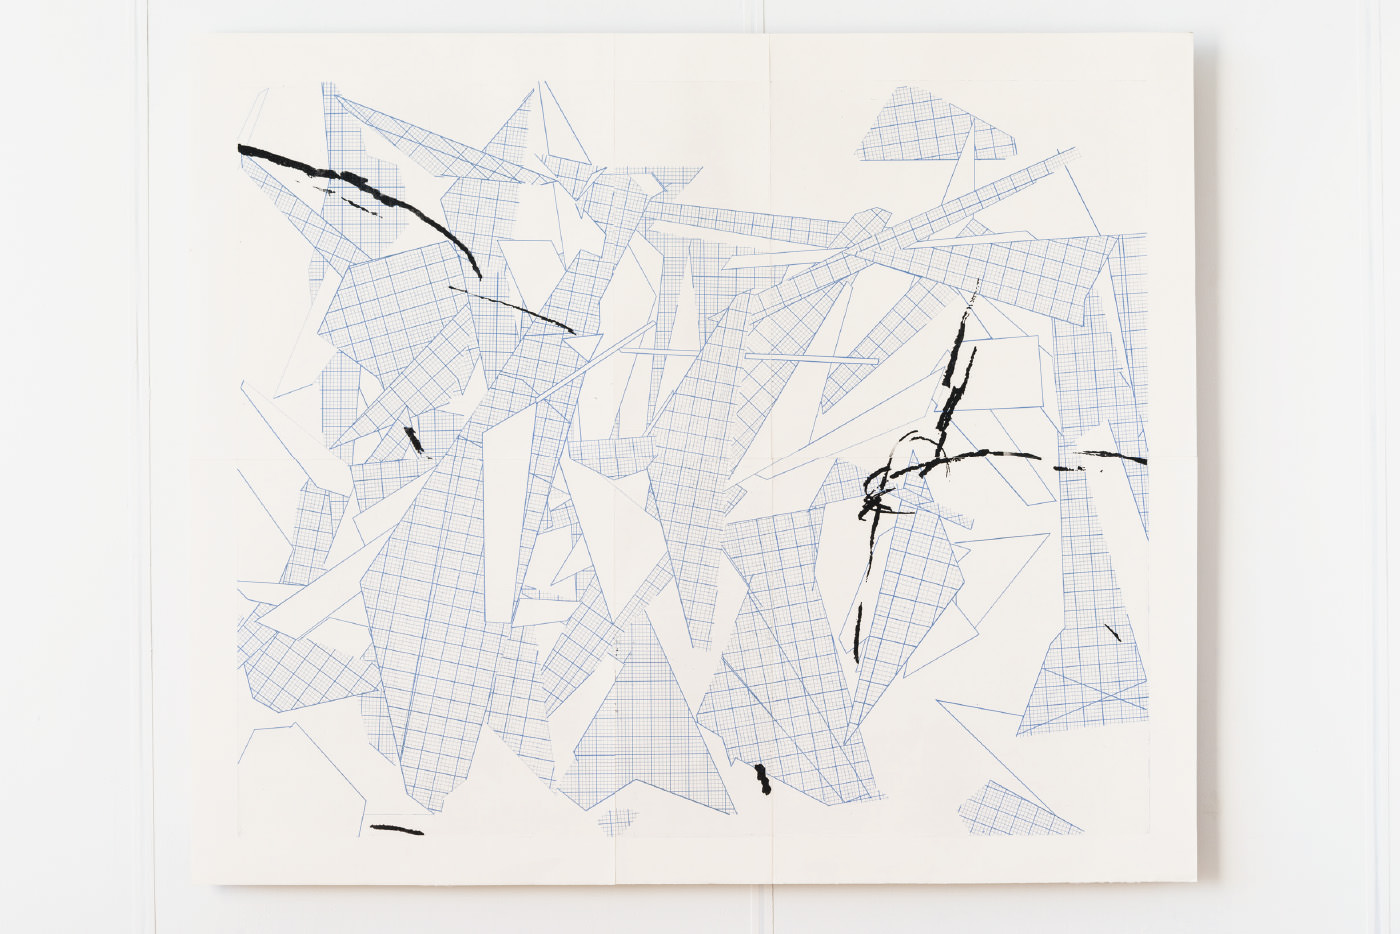 memo ( a source of elephant ) , アルシュ紙にエッチング (2版2色 )(etching on arches paper, 2plates 2colors), 1360 × 1610 × 32 mm, 2013 ( photo by Ken Kato )